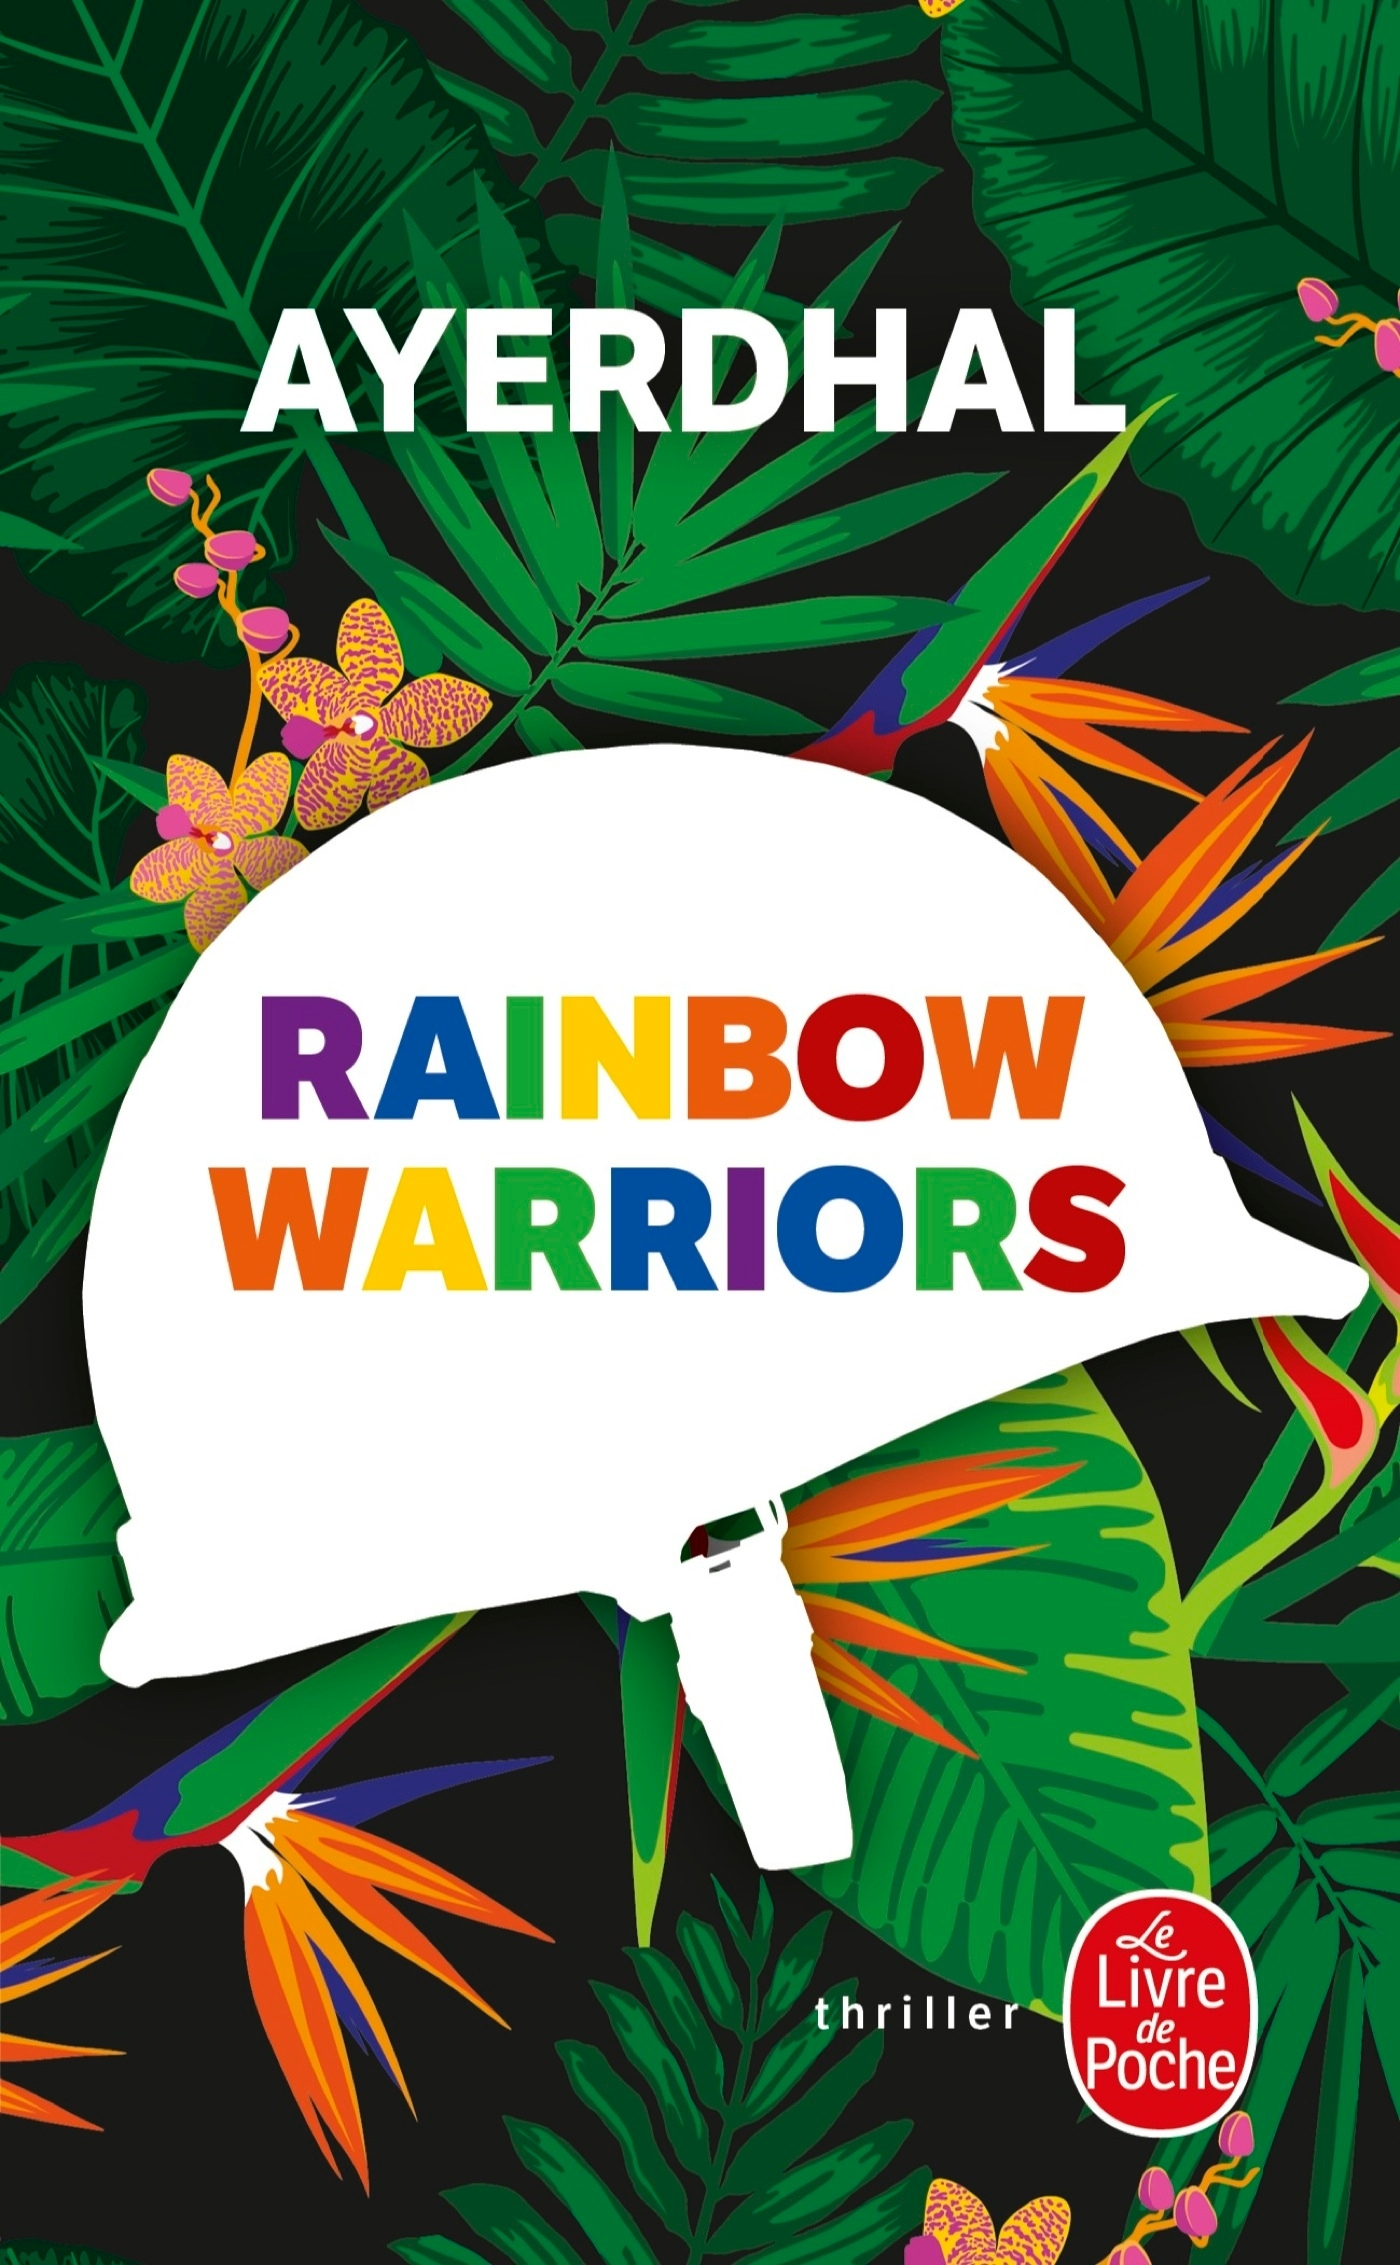 RAINBOWS WARRIORS